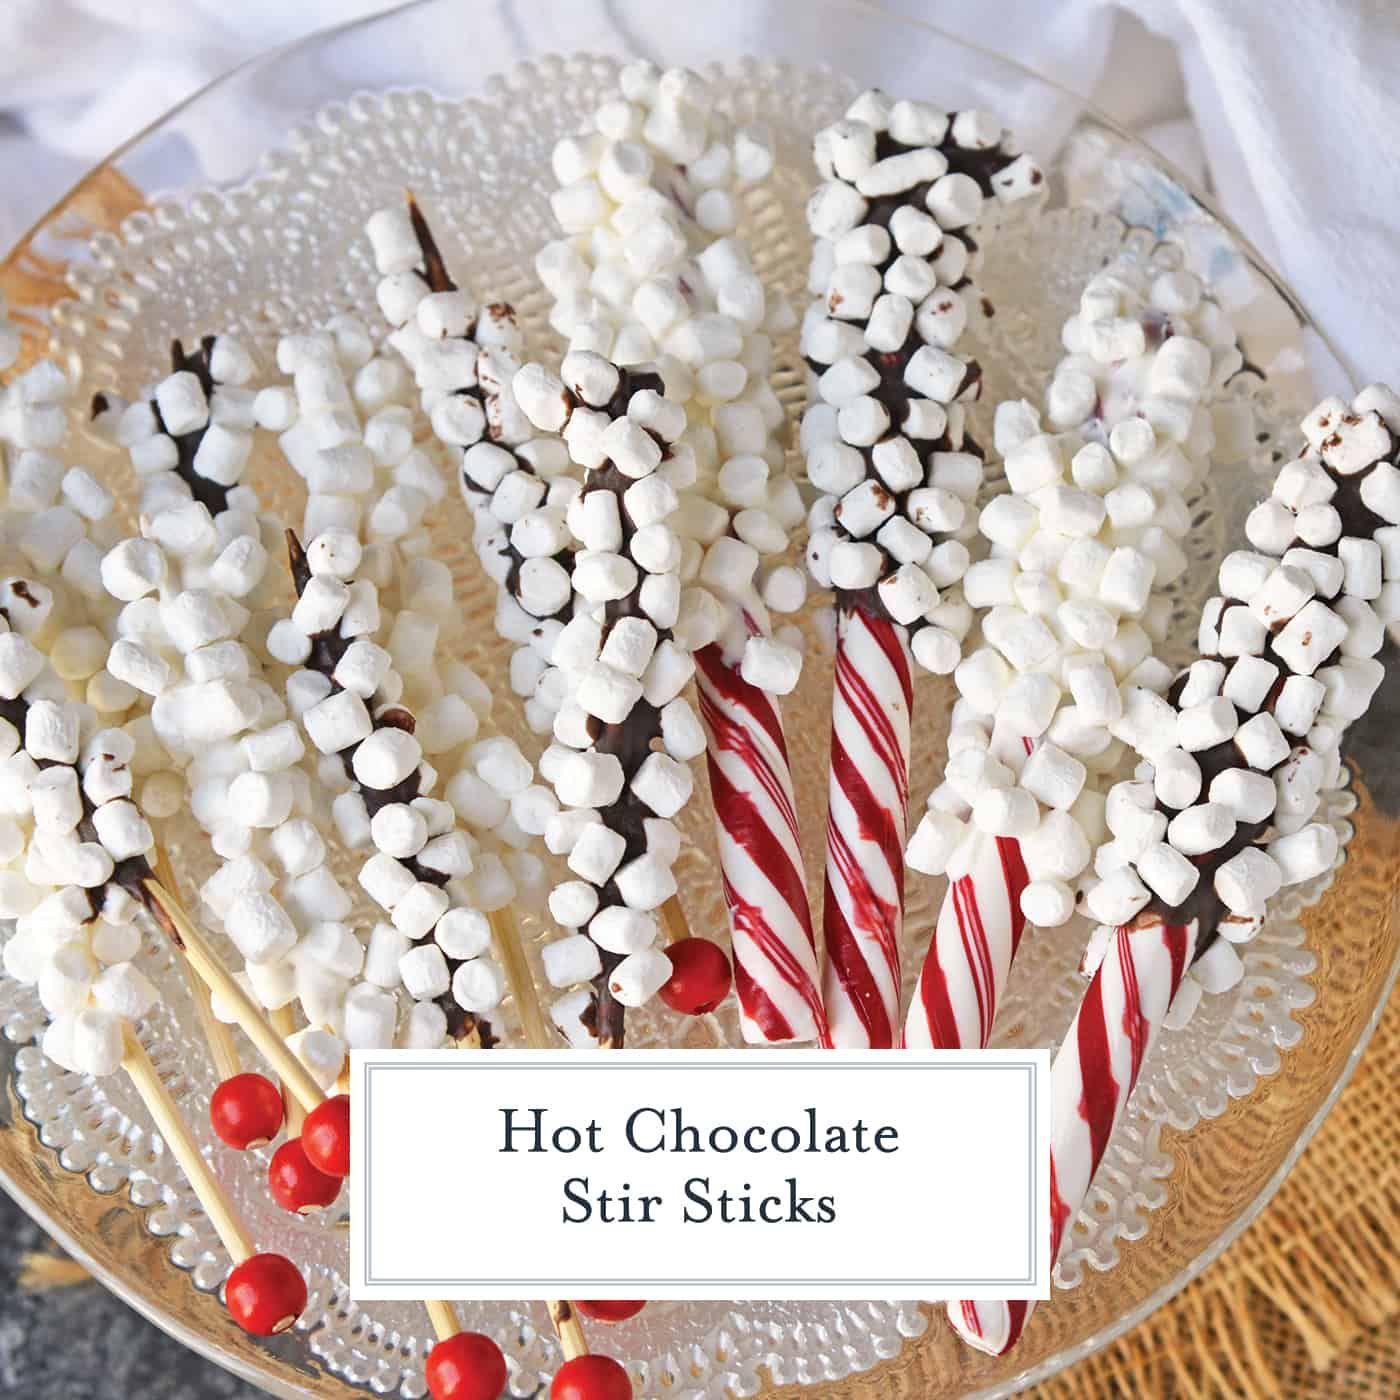 Hot Chocolate Stir Sticks will take your homemade hot chocolate to the next level. Like chocolate spoons, they add marshmallows and more to your drink! #chocolatespoons #hotchocolatestirsticks www.savoryexperiments.com #hotchocolatebar